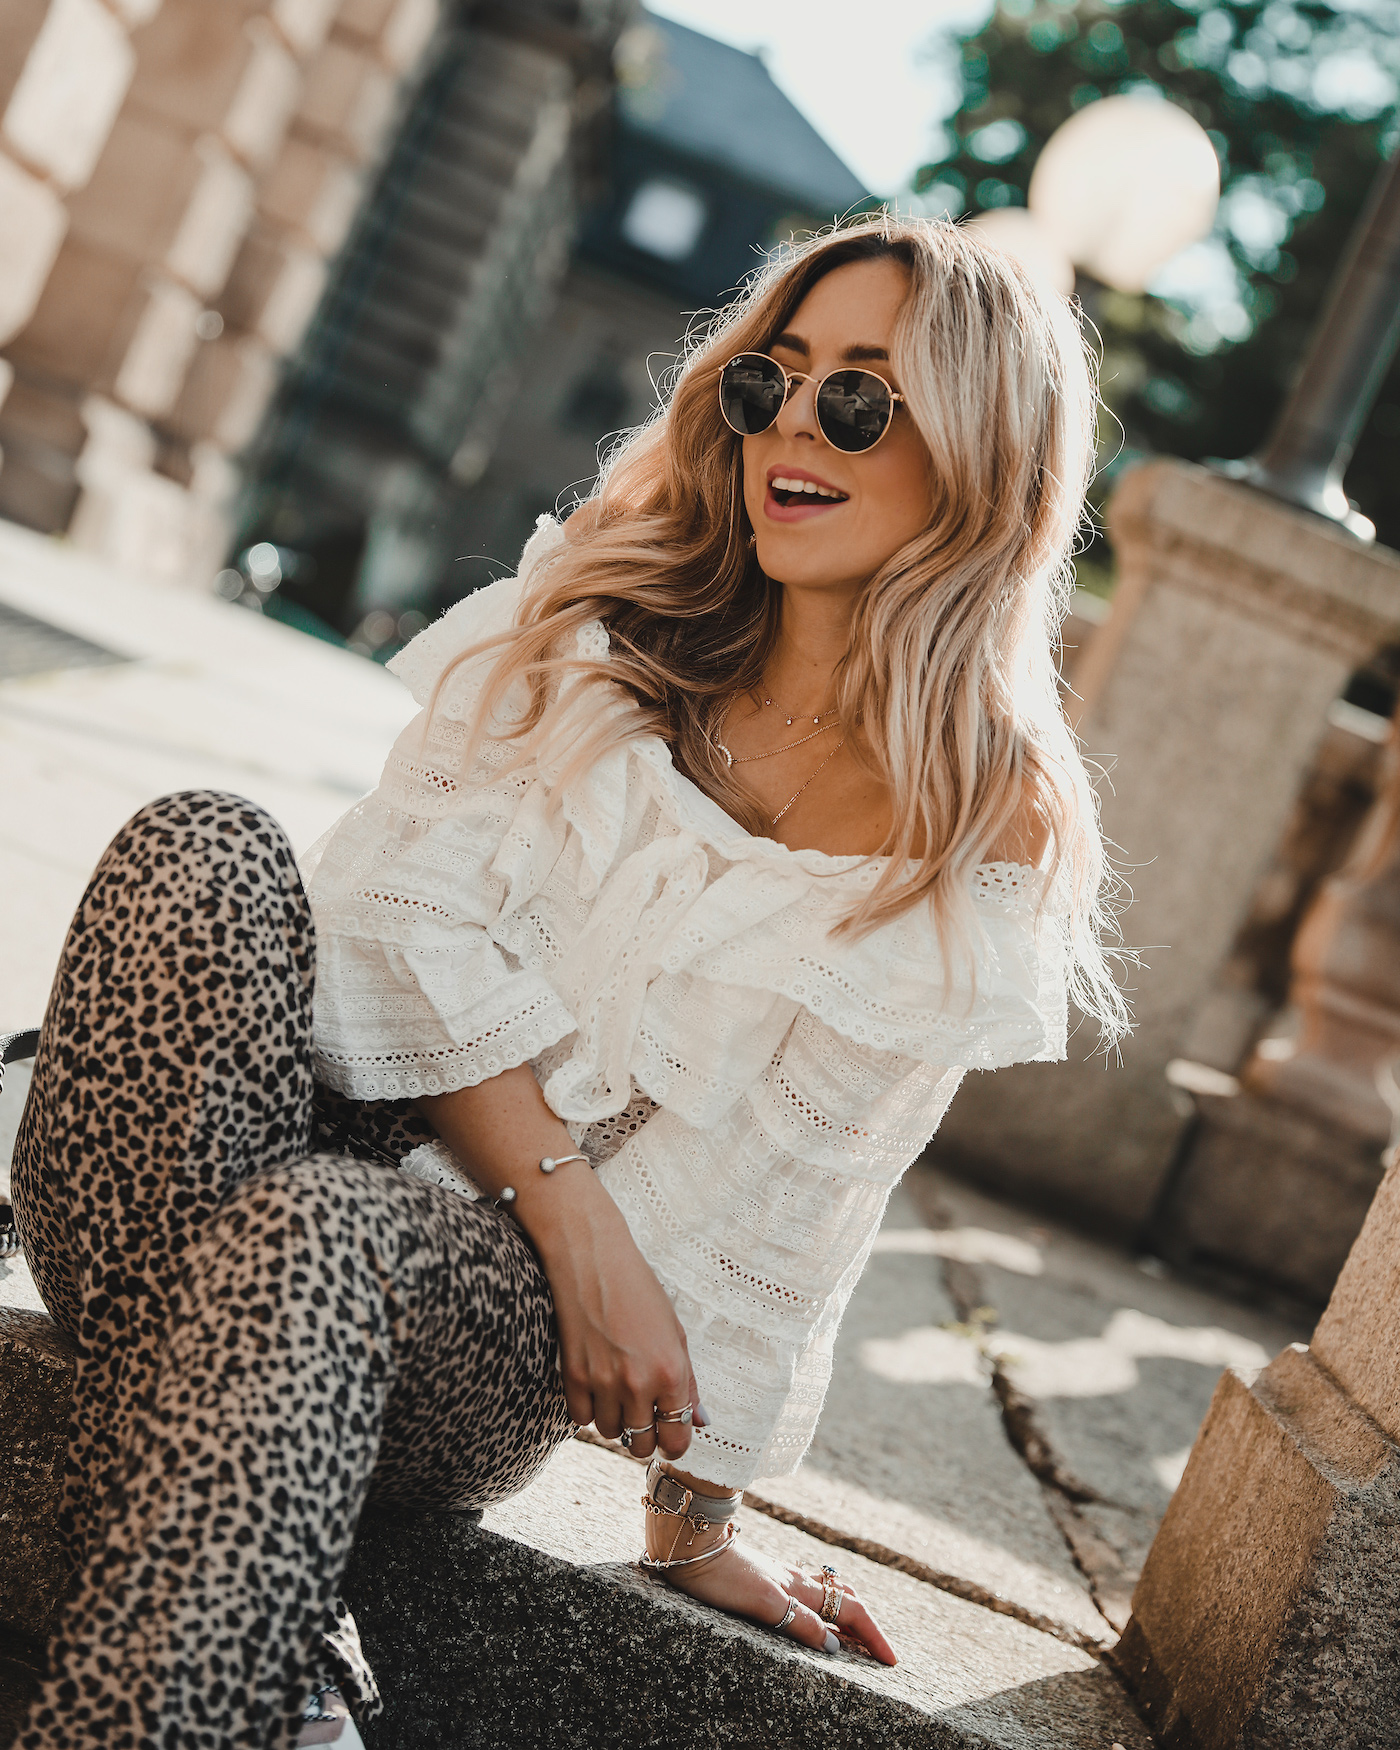 a28a24fc09cb 3 Outfit Ideas for Leopard Print & where to shop the hottest pieces ...